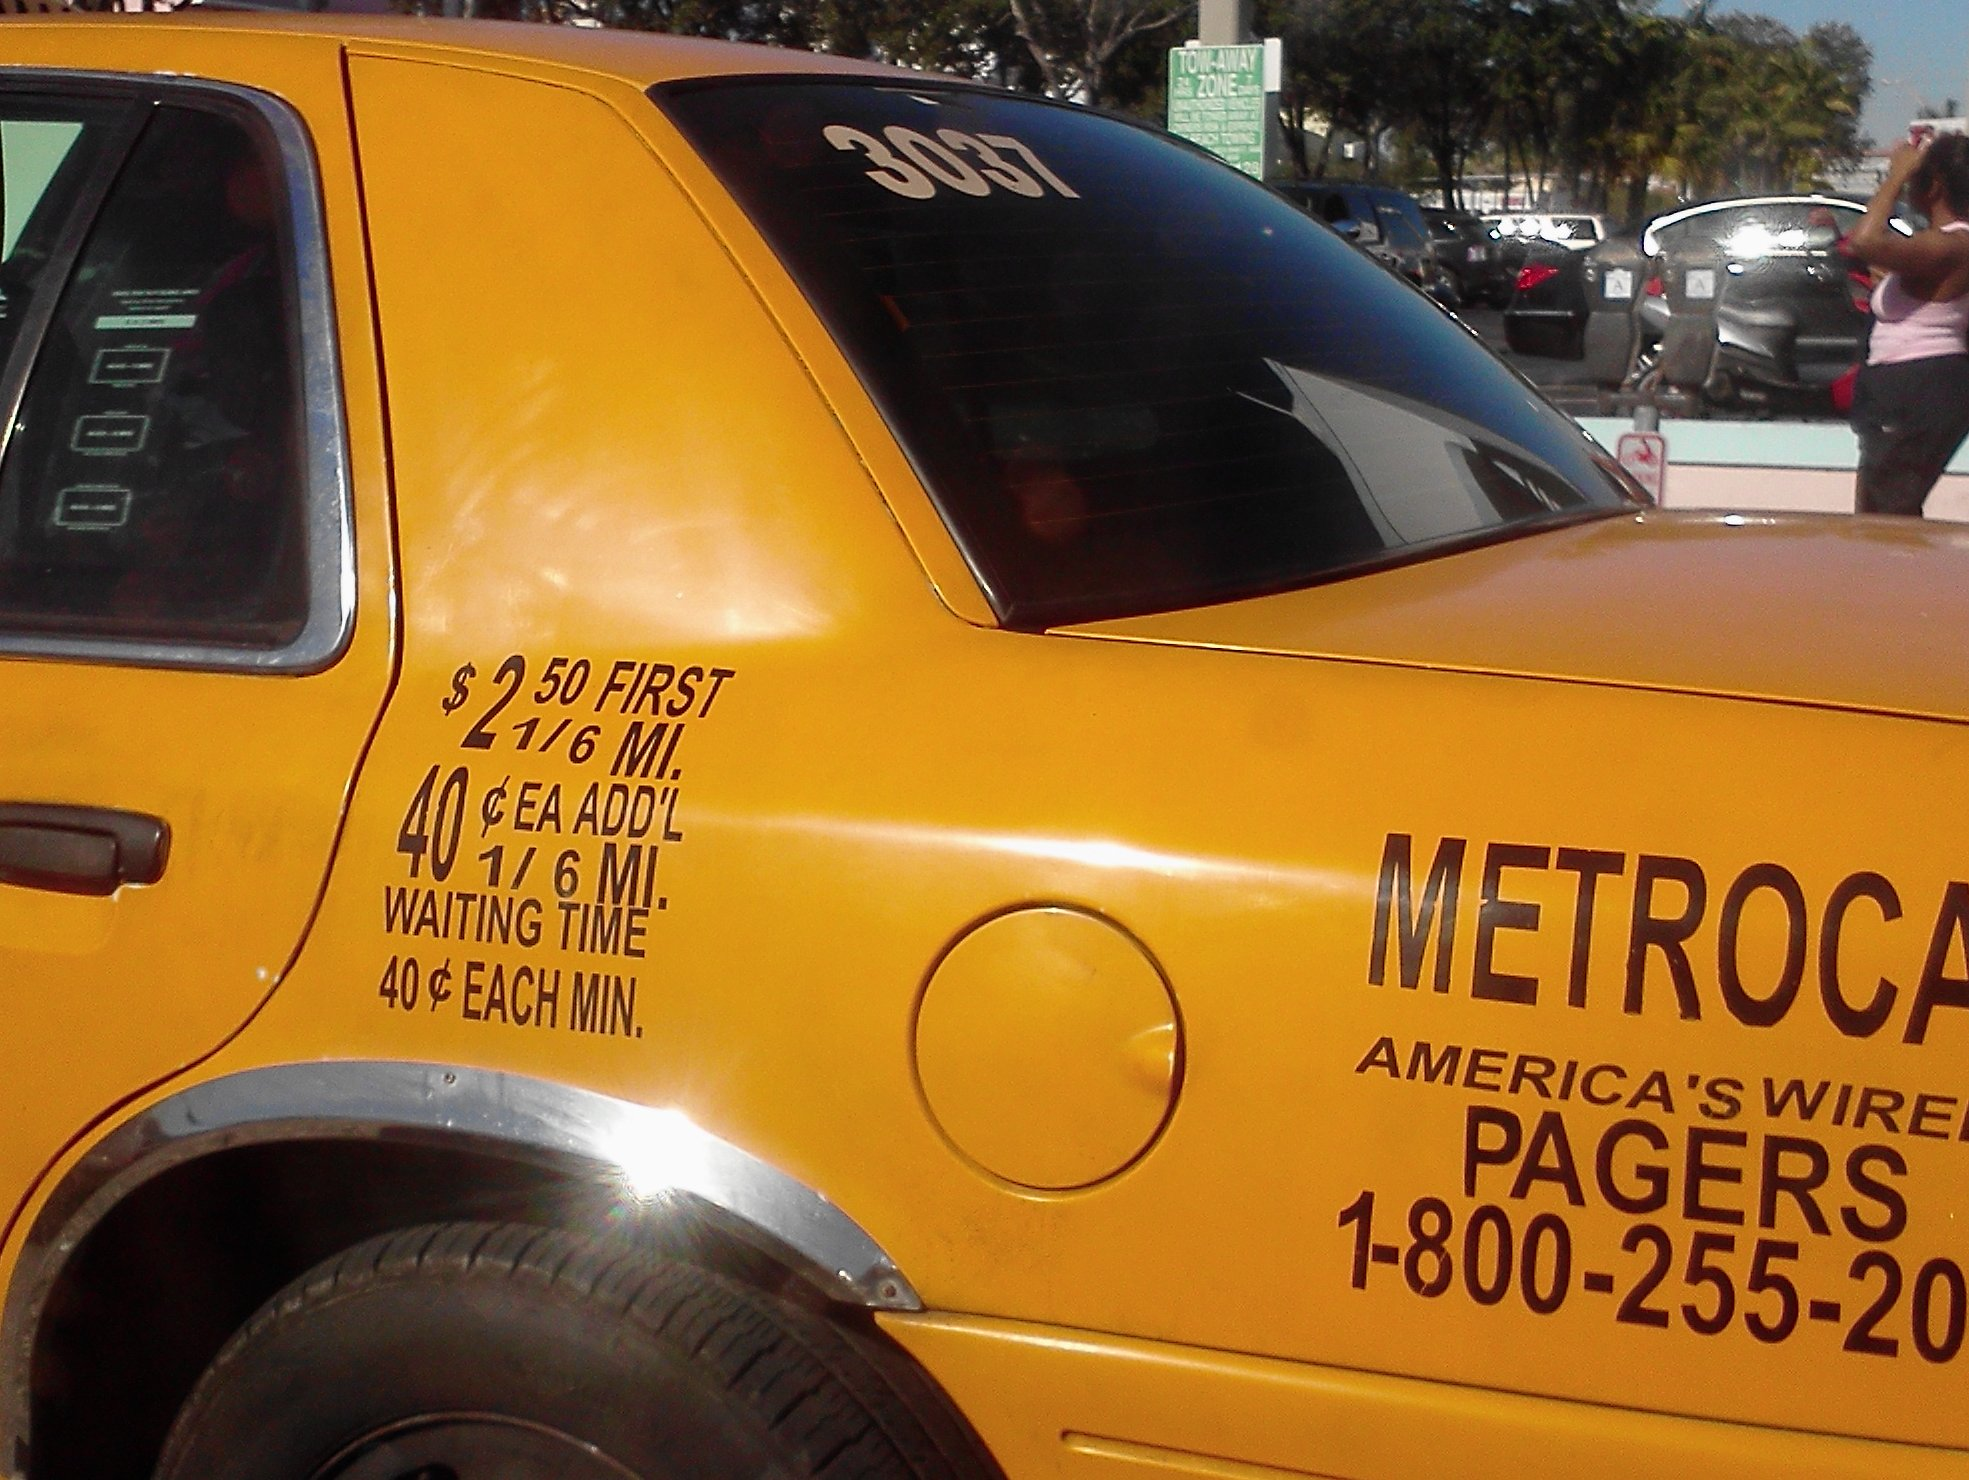 Cab Fare From Willmington Nc To Myrtle Beach Sc